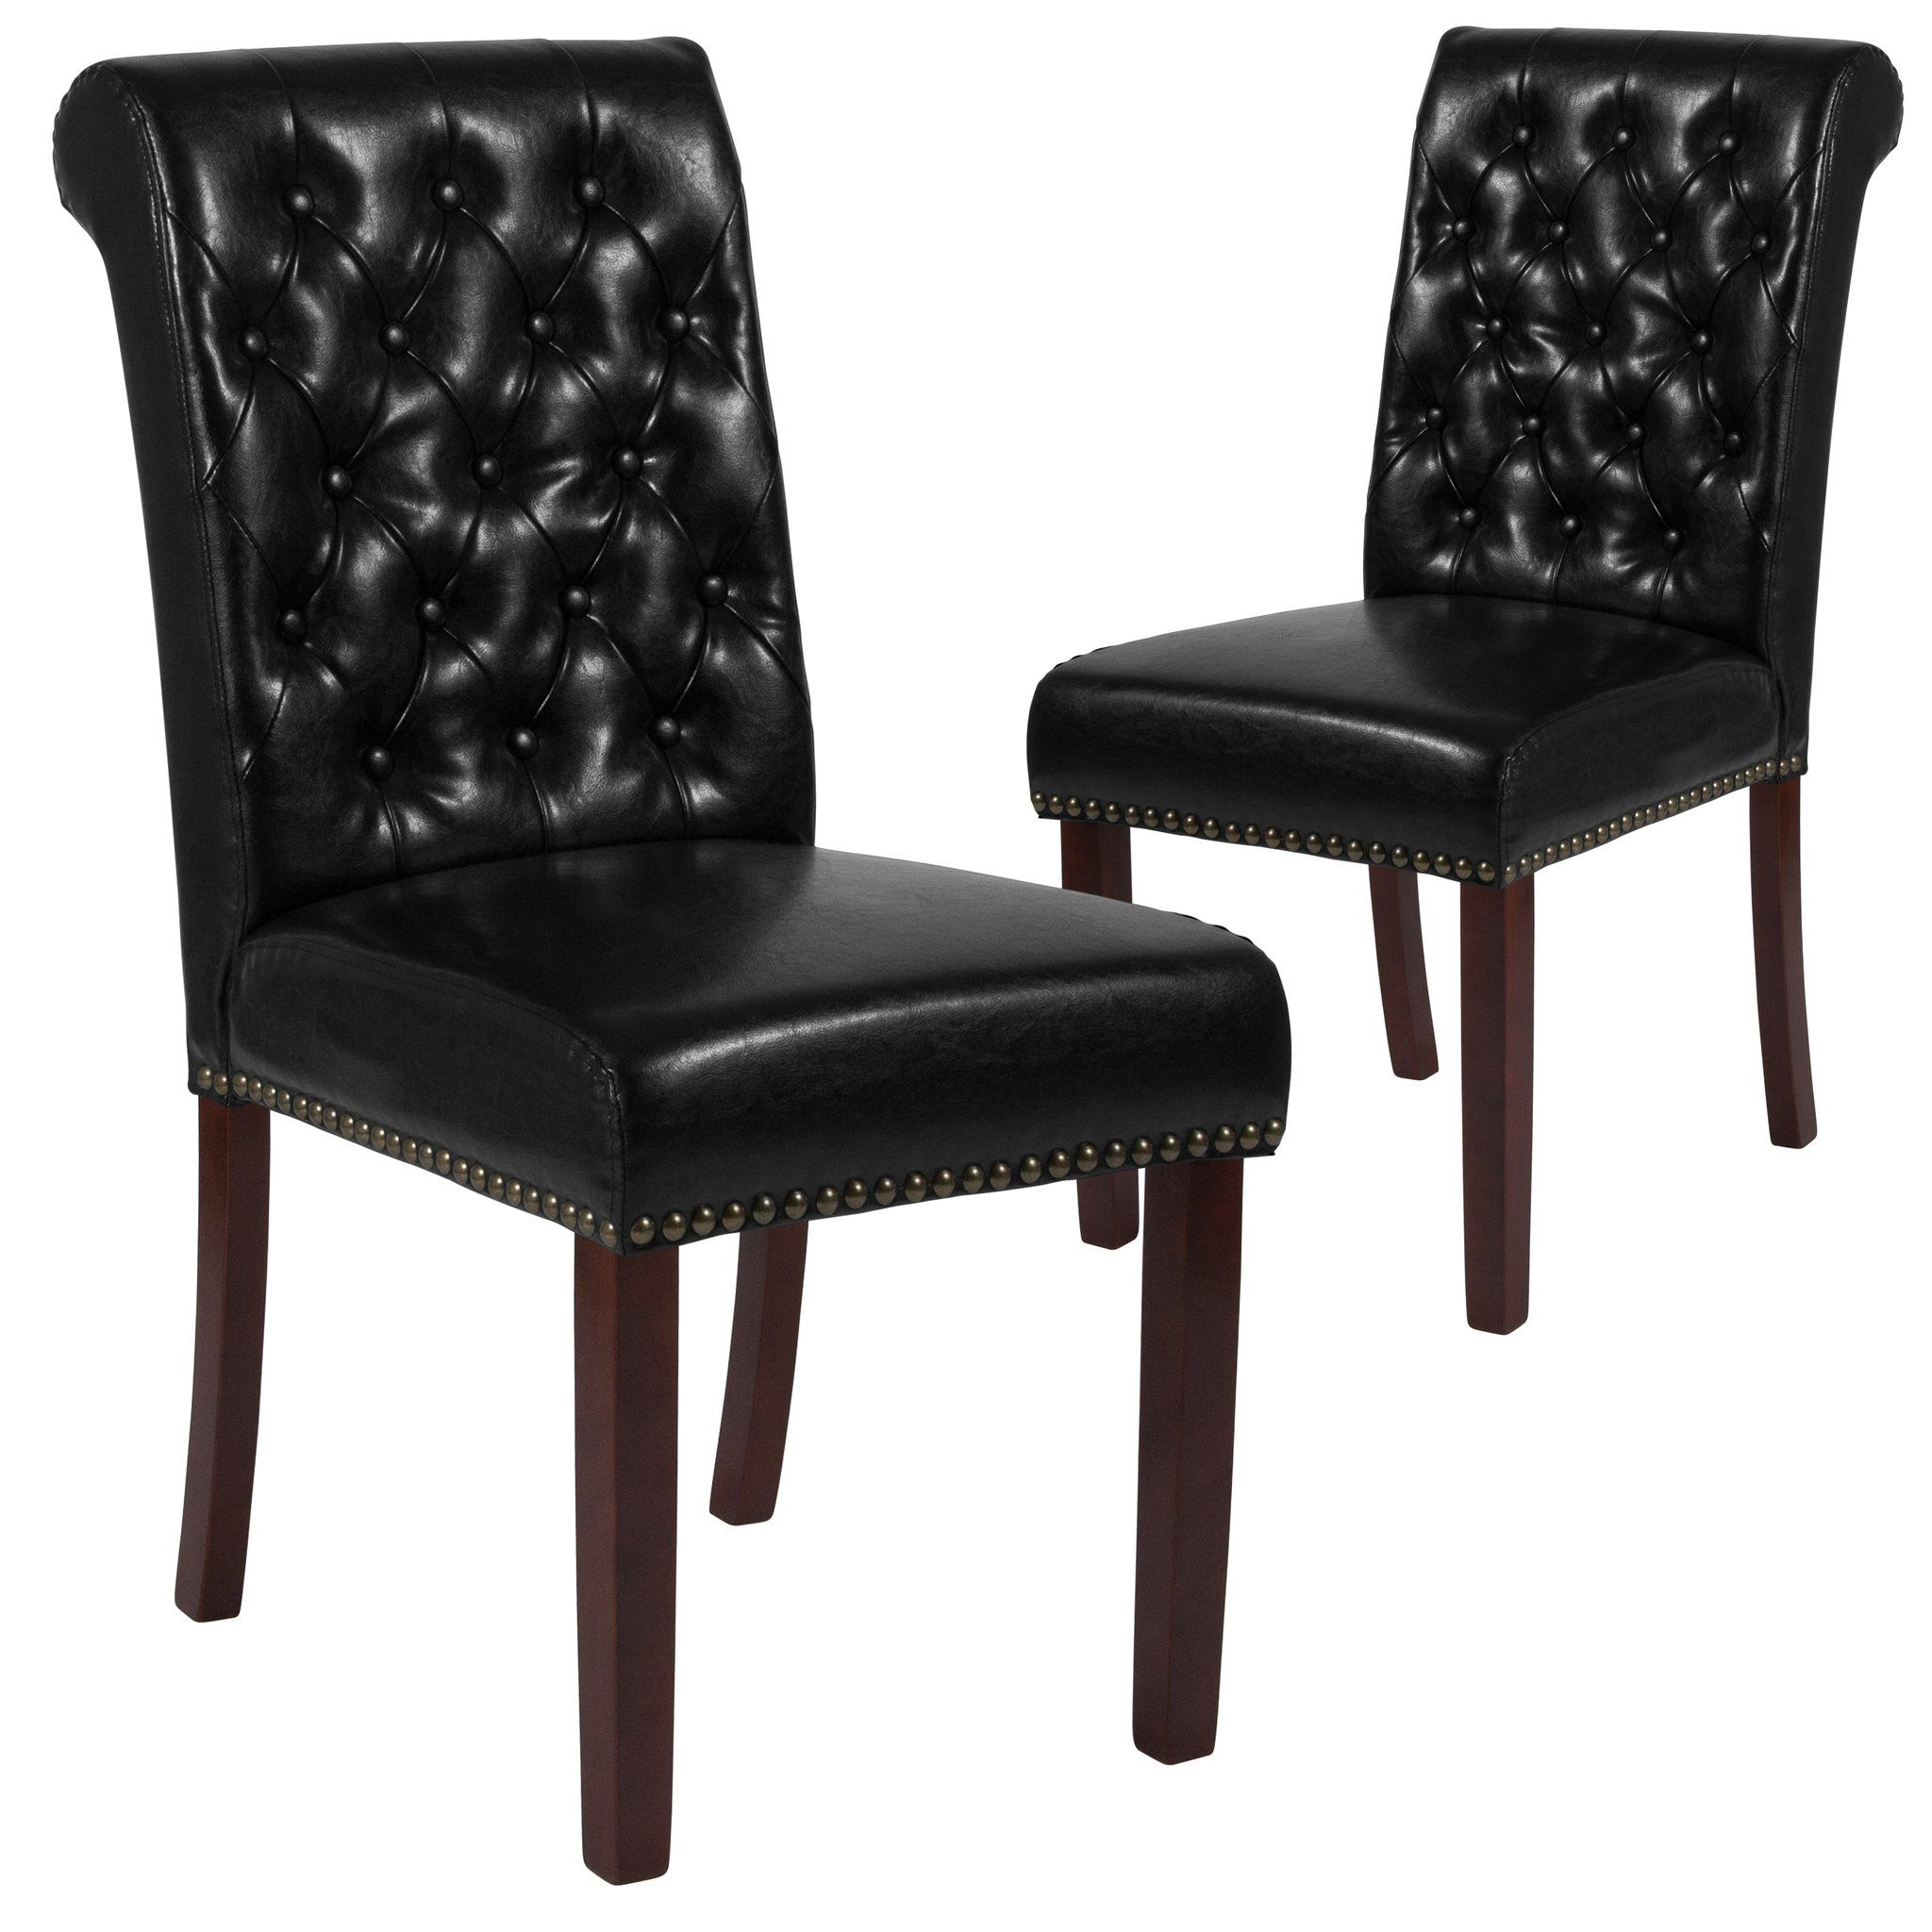 black leather tufted chair